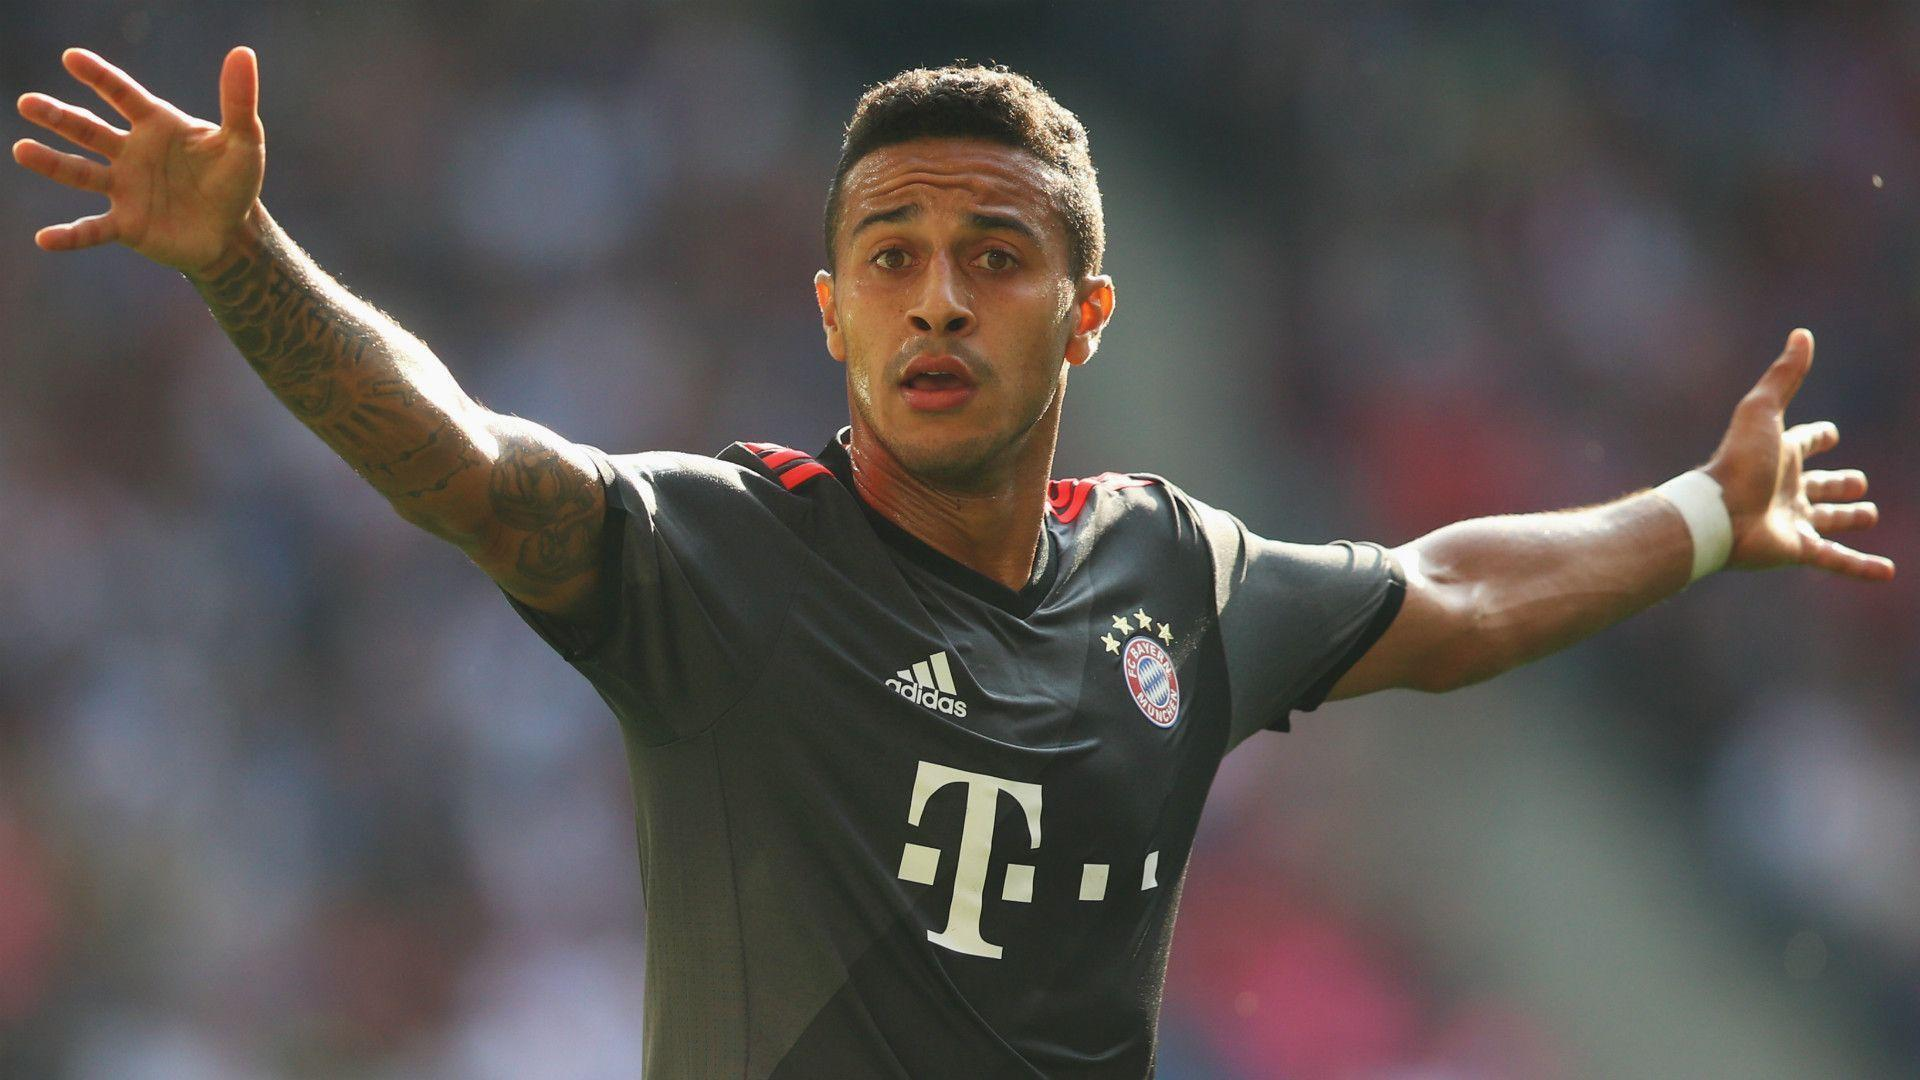 Thiago 'will stay for a long time at Bayern' - agent - Goal.com